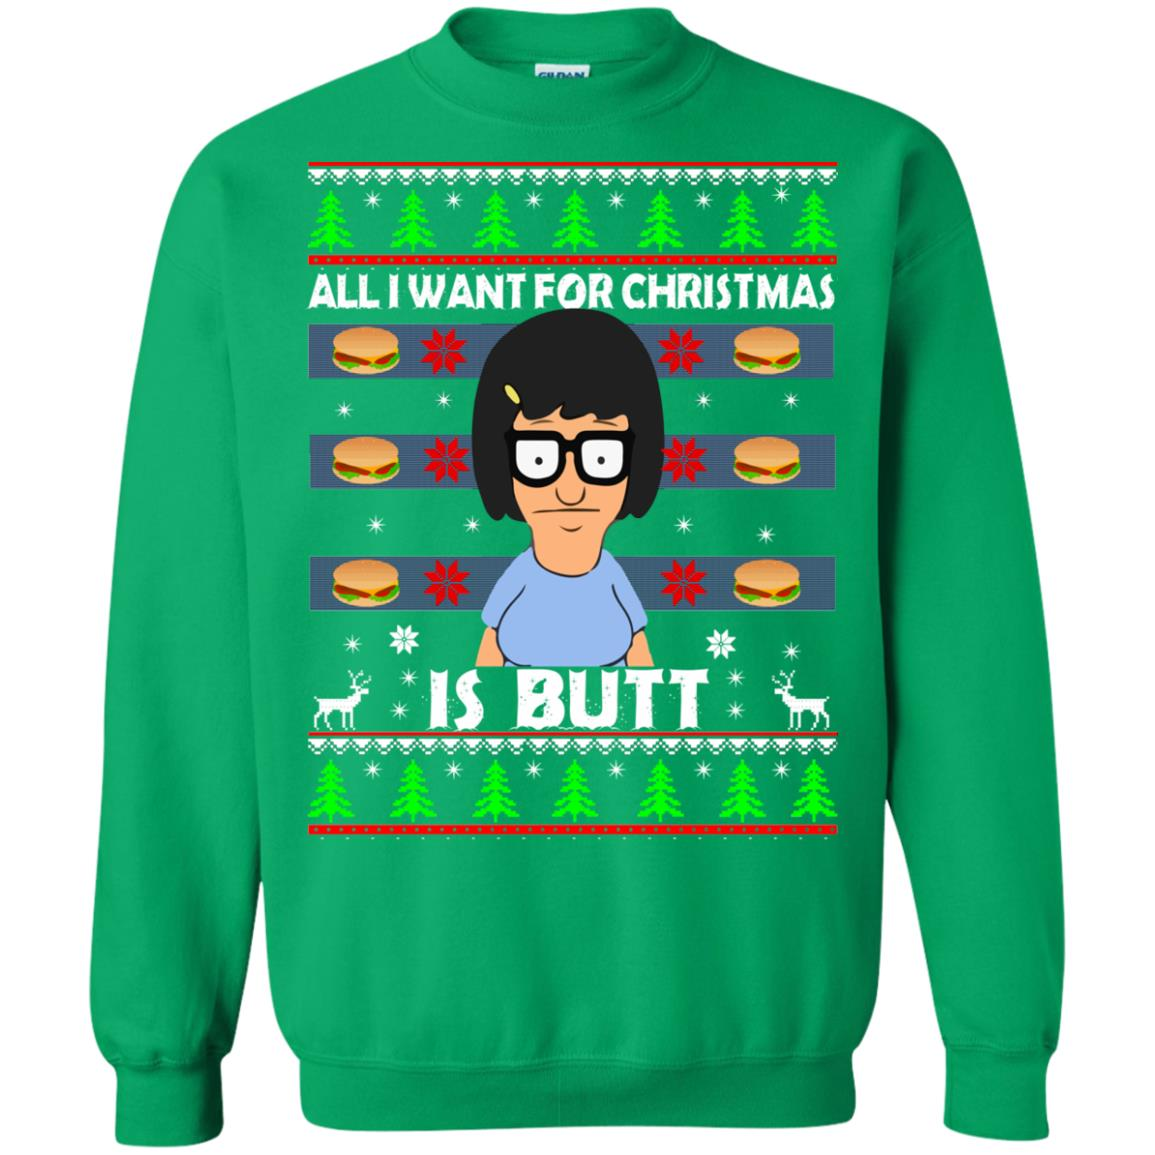 image 148 - Bob's Burgers: All I Want for Xmas is Butt Christmas Sweater, Hoodie